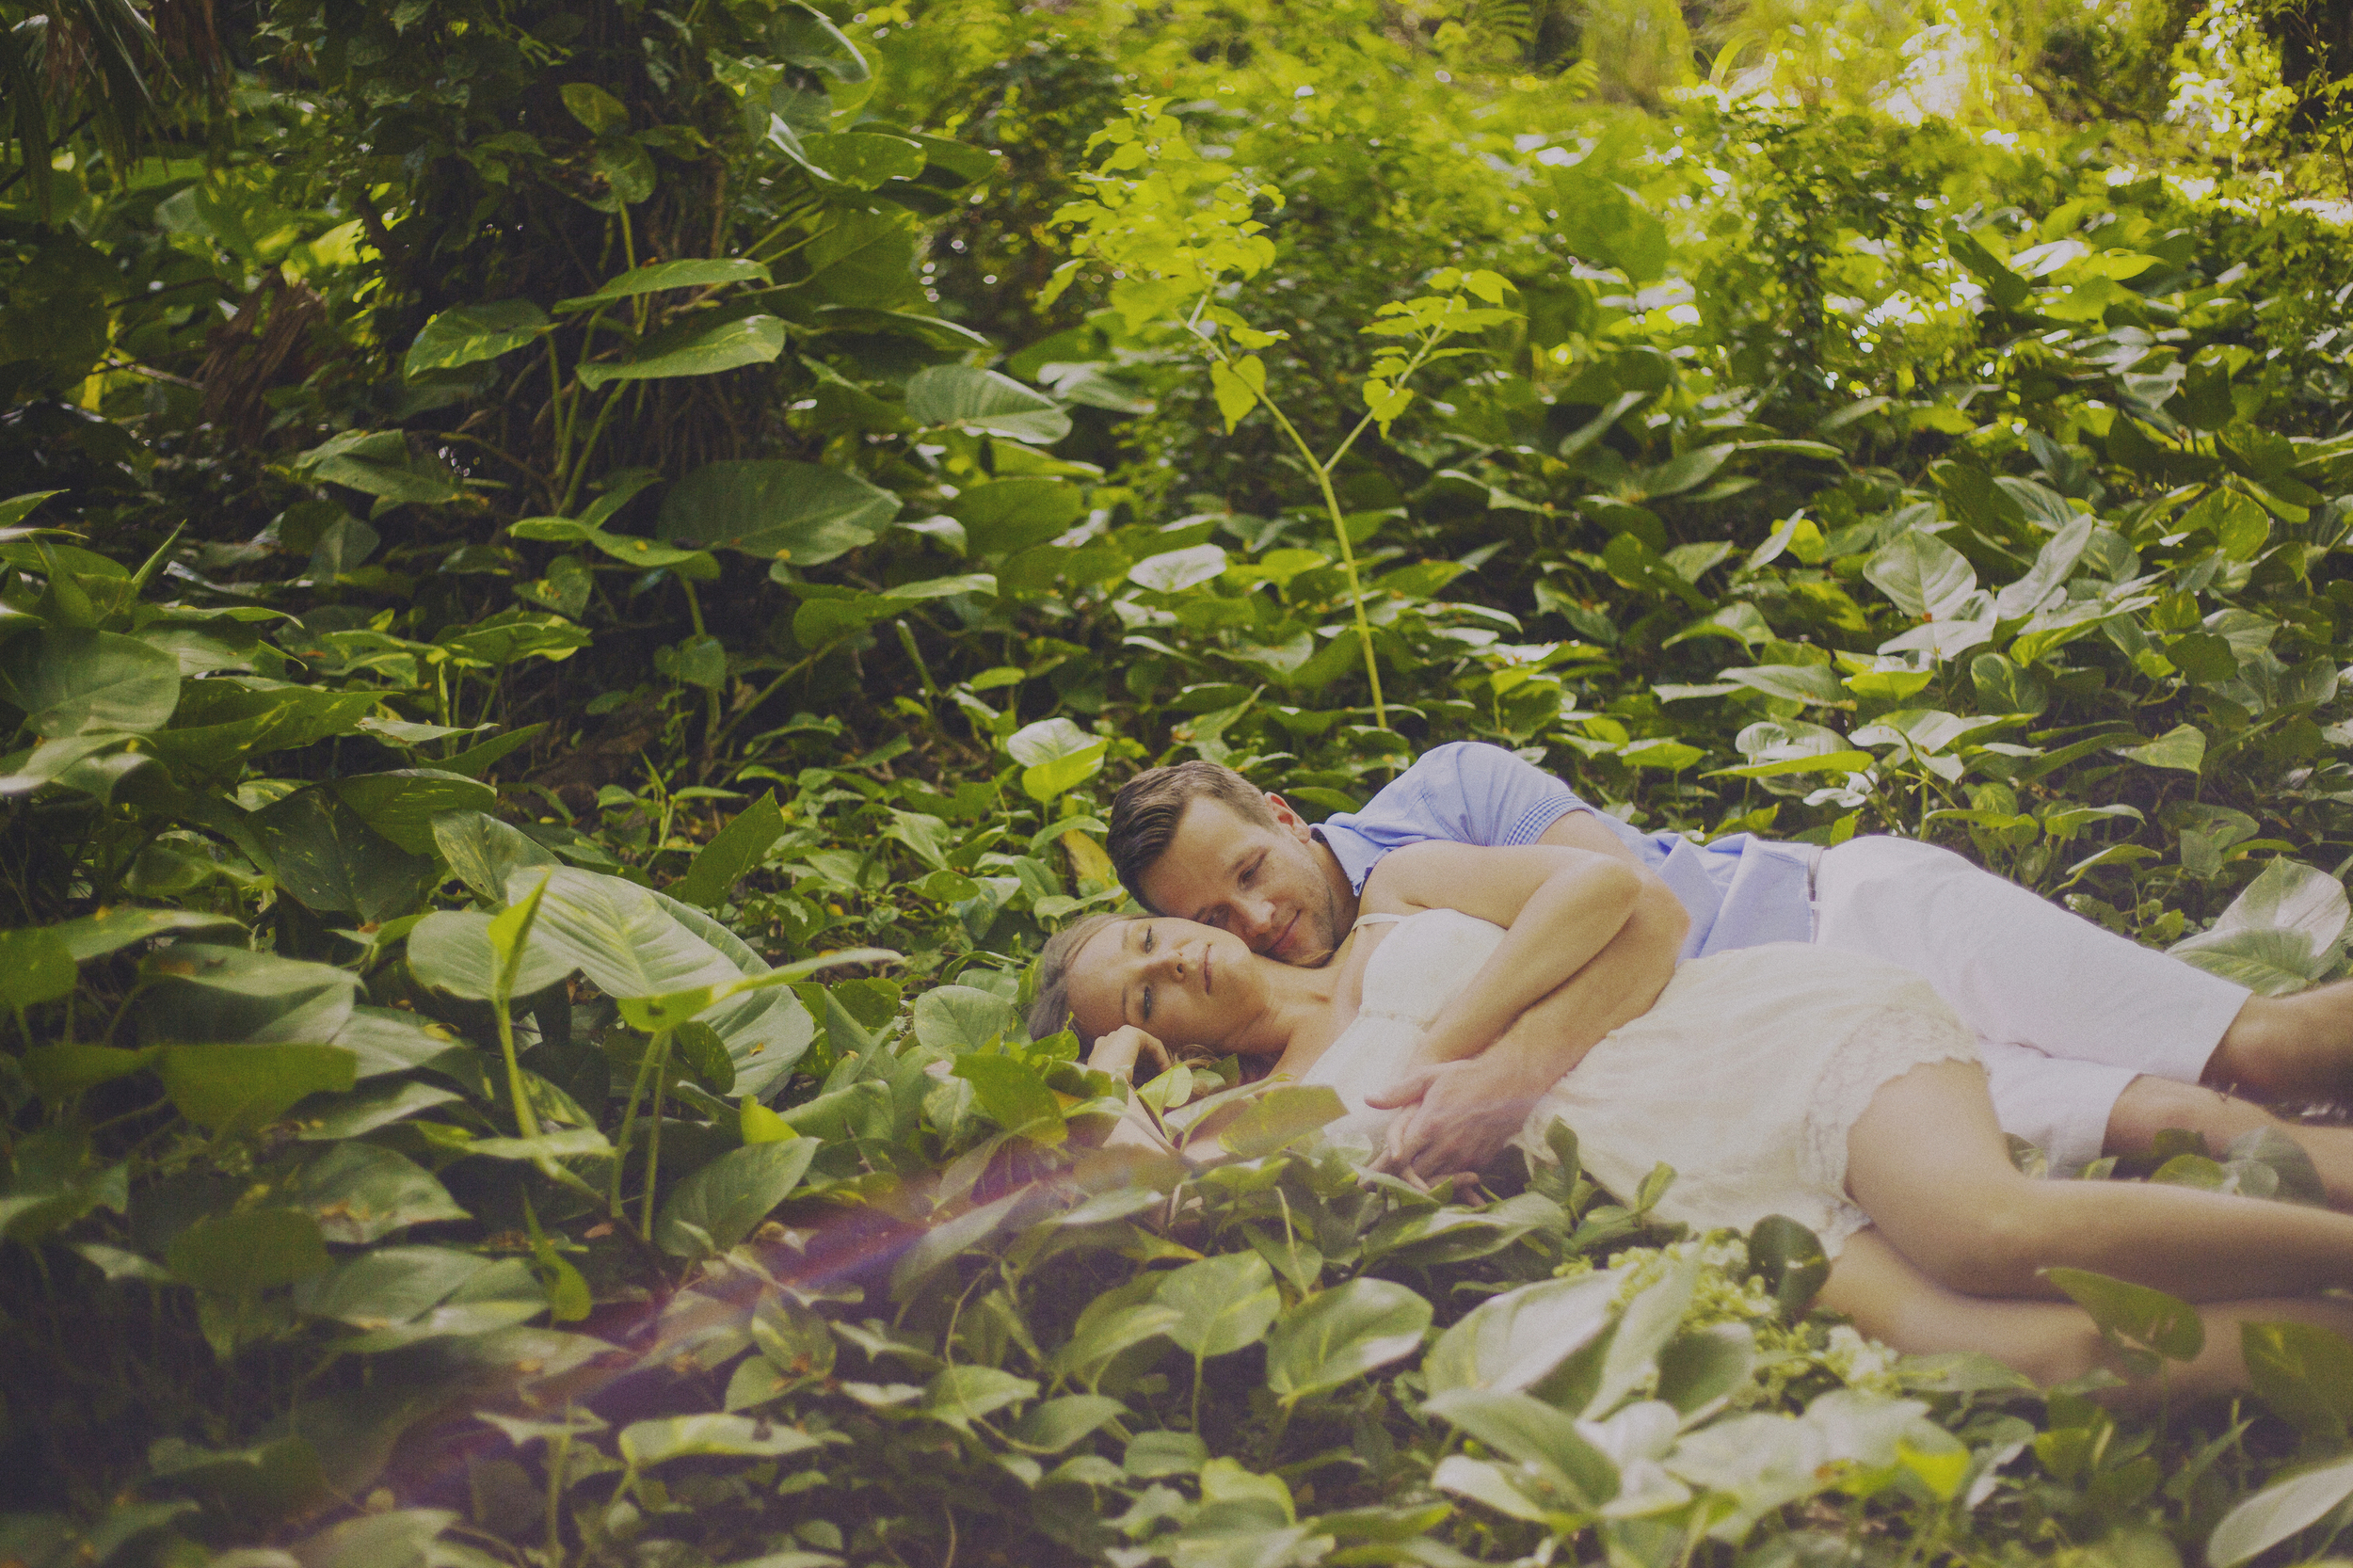 angie-diaz-photography-west-maui-forest-reserve-elopement-6.jpg